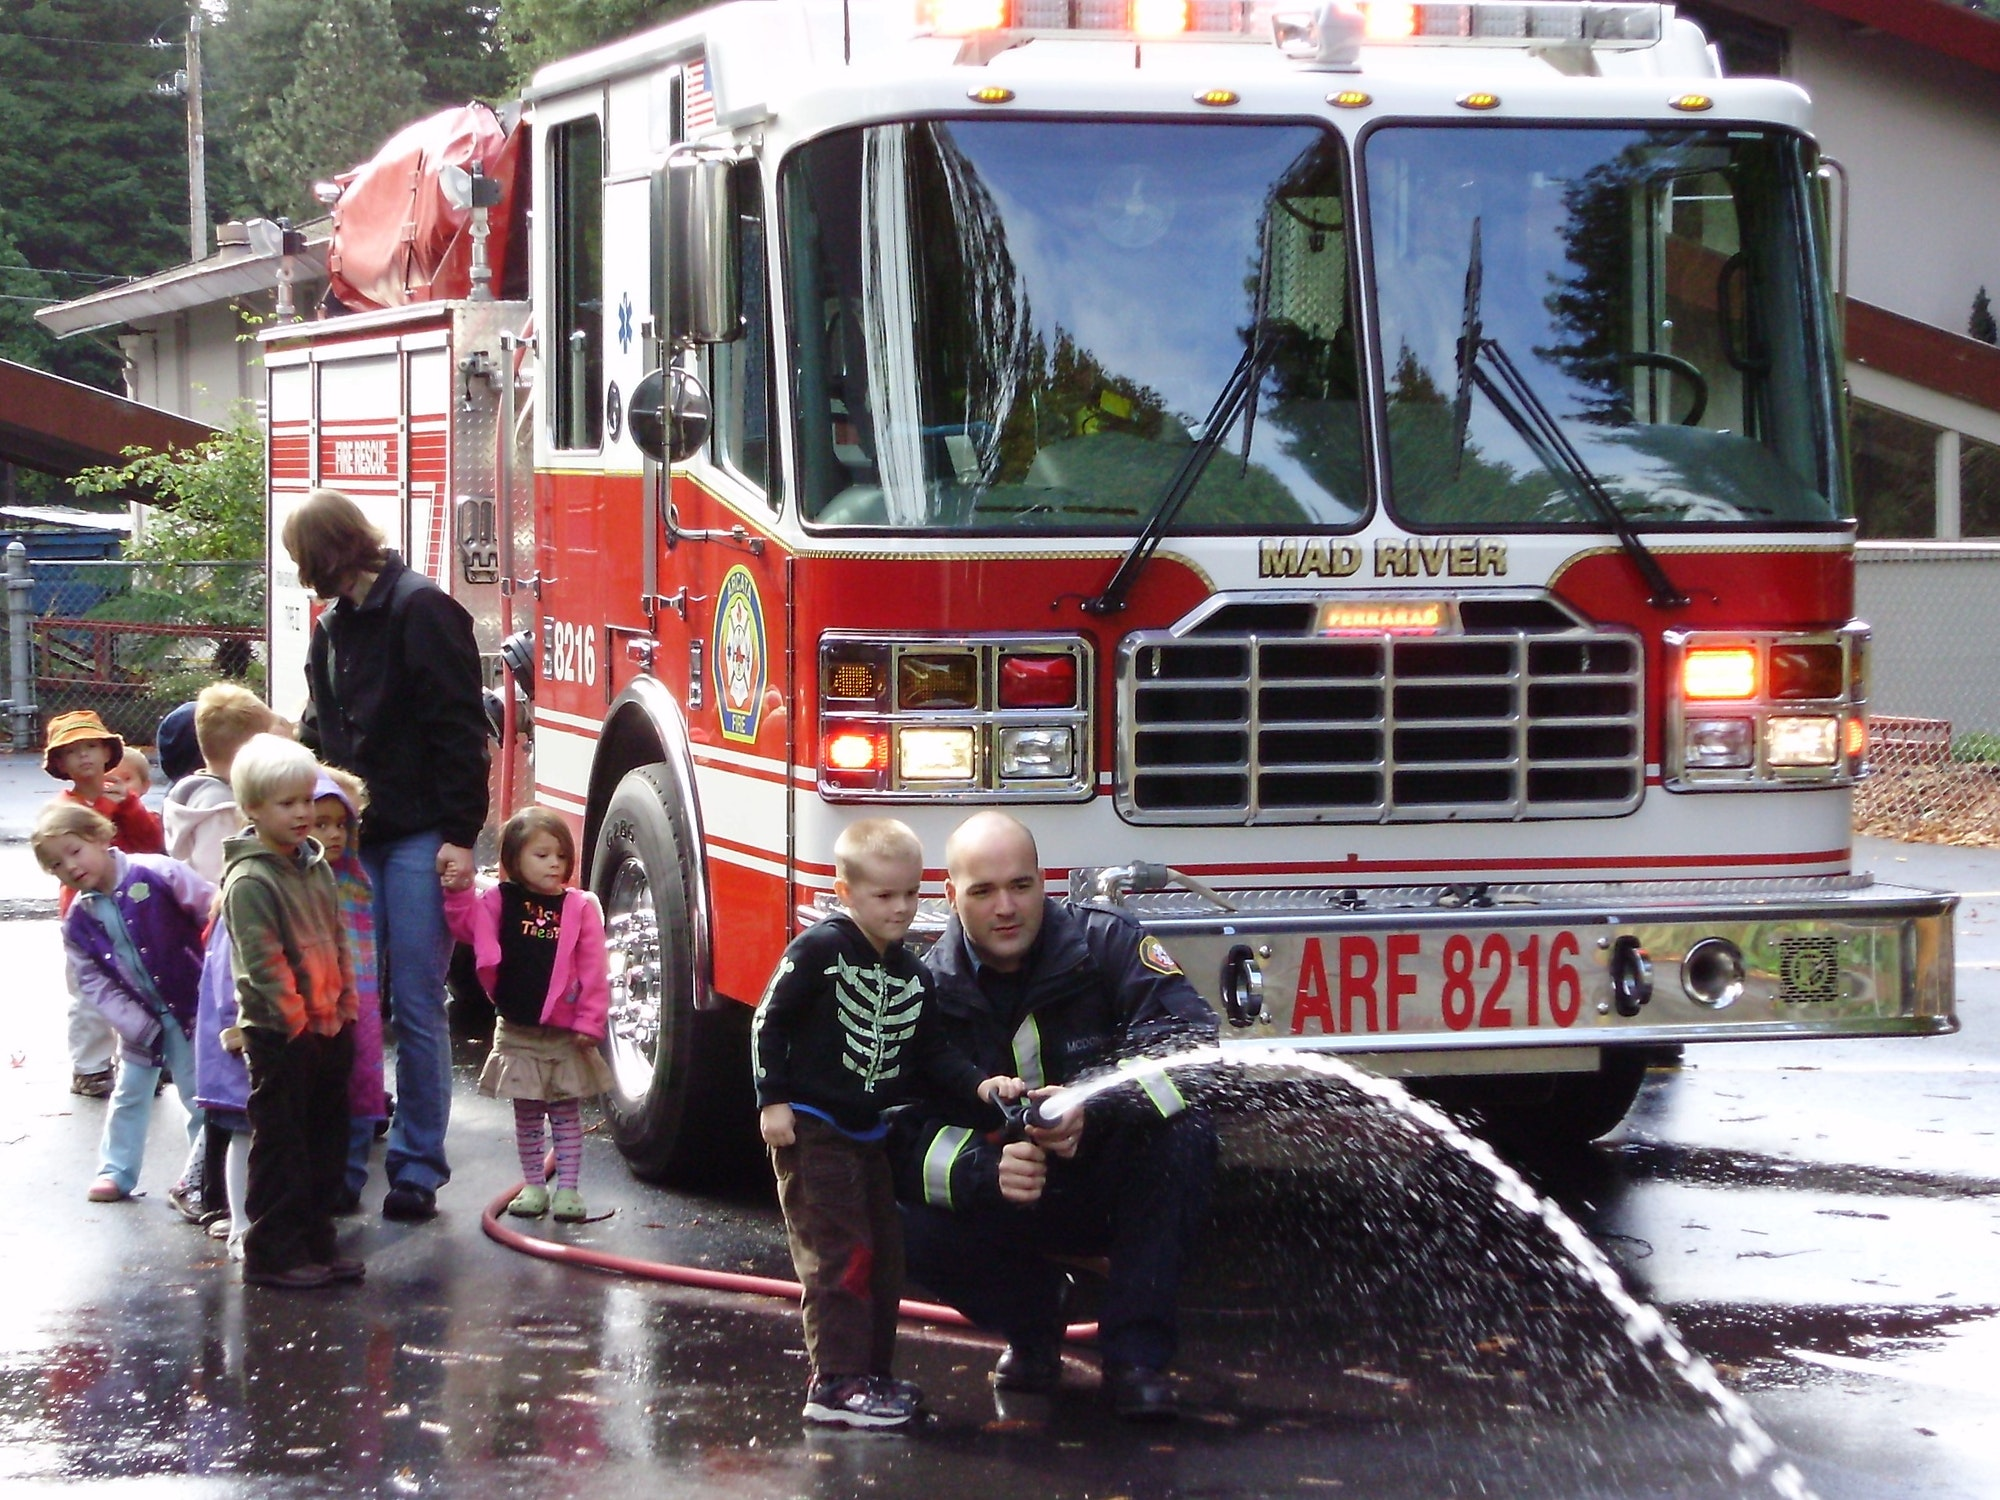 Photo of Firefighter spraying water with kids at public education event.